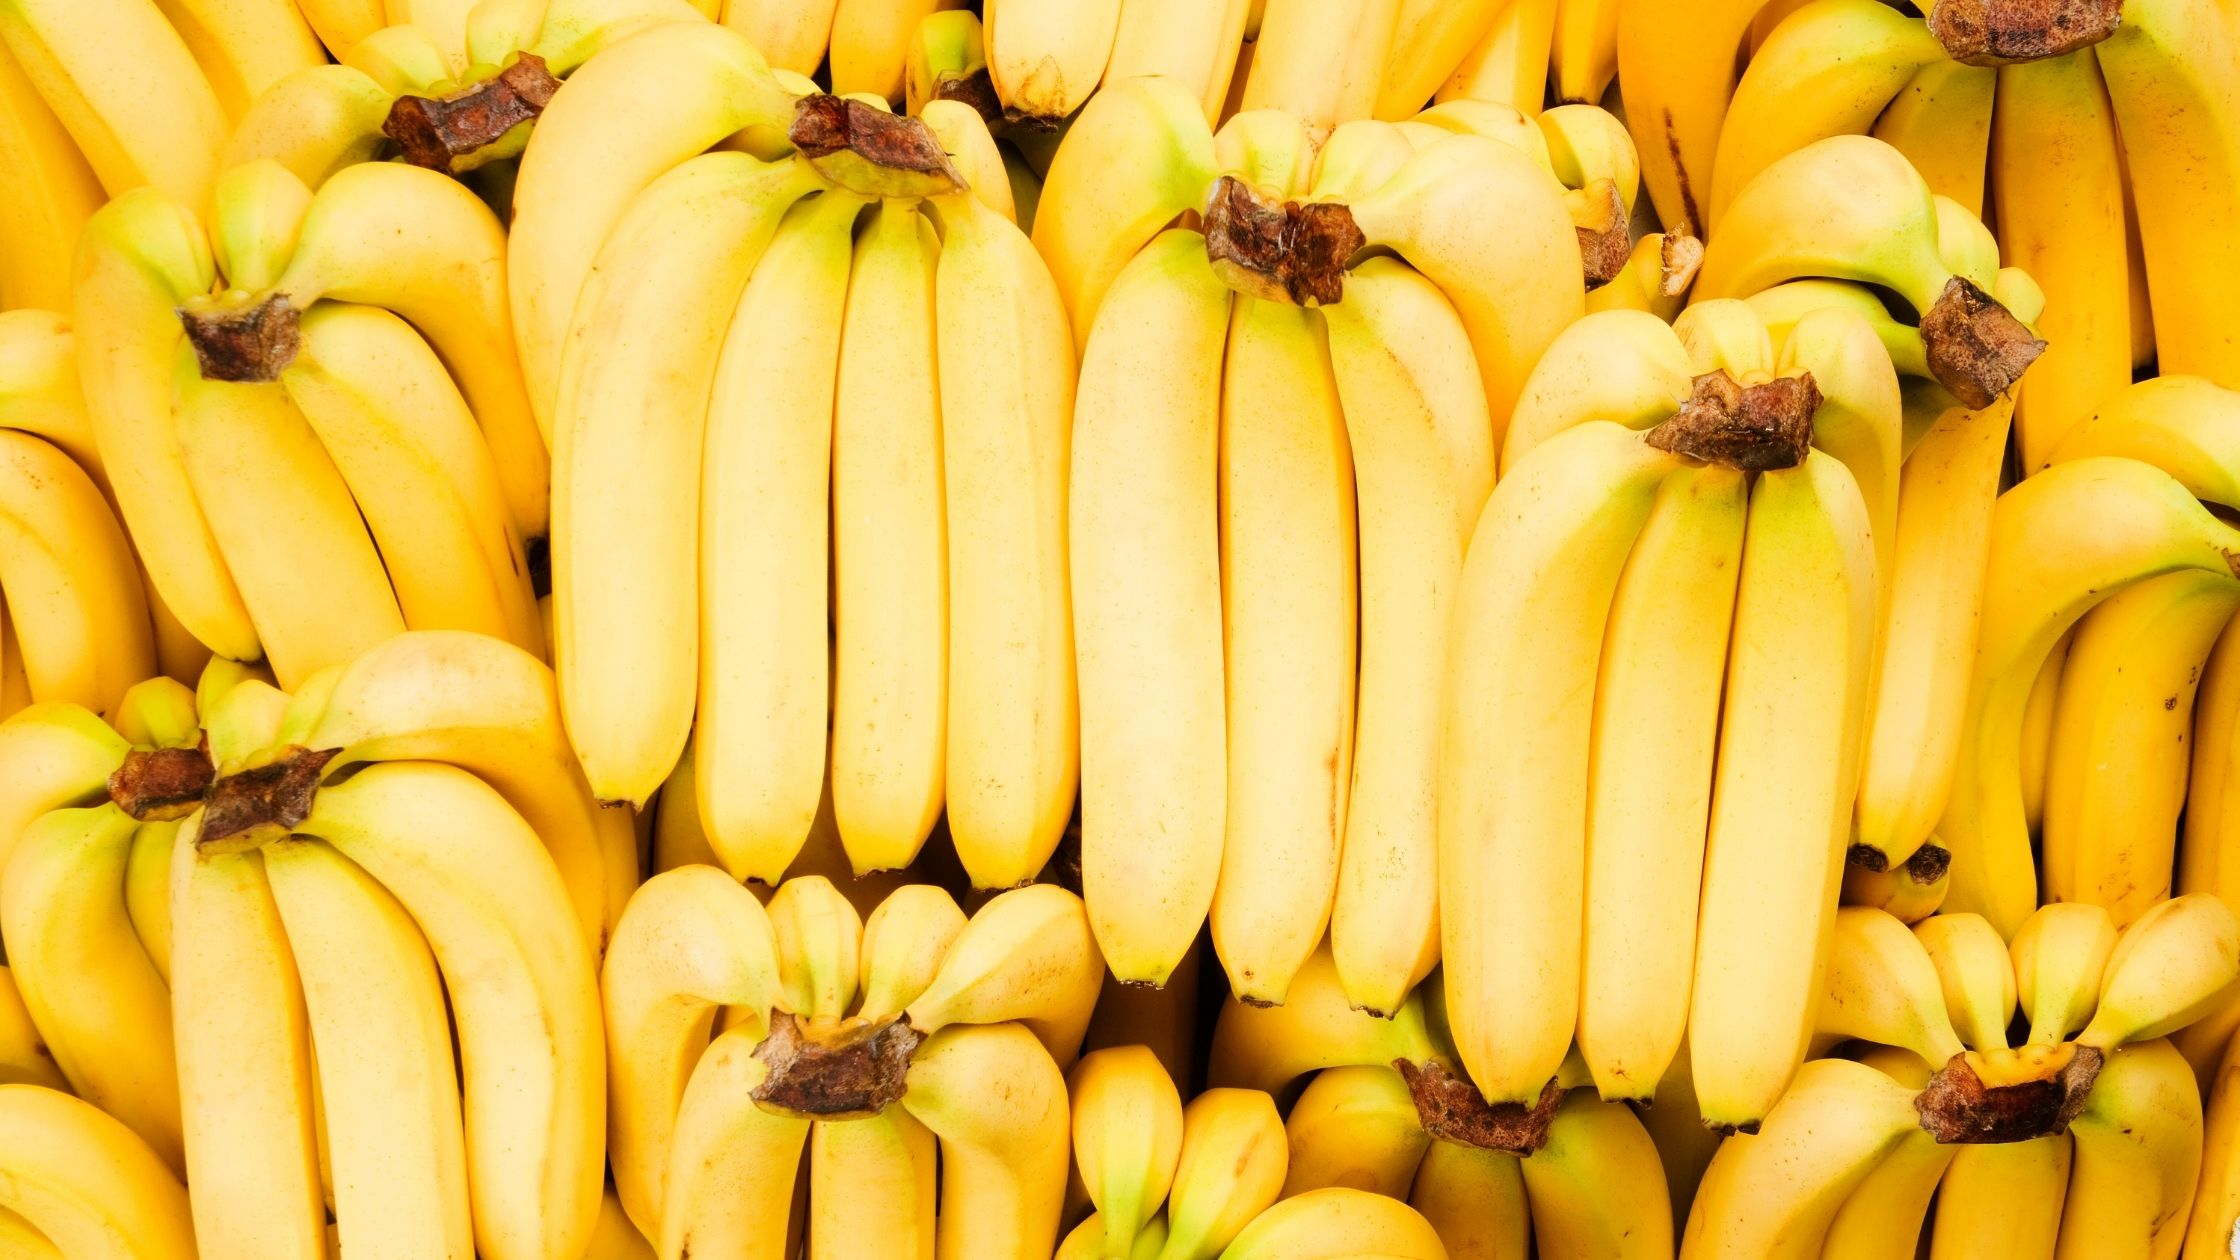 Are bananas okay with a keto diet?